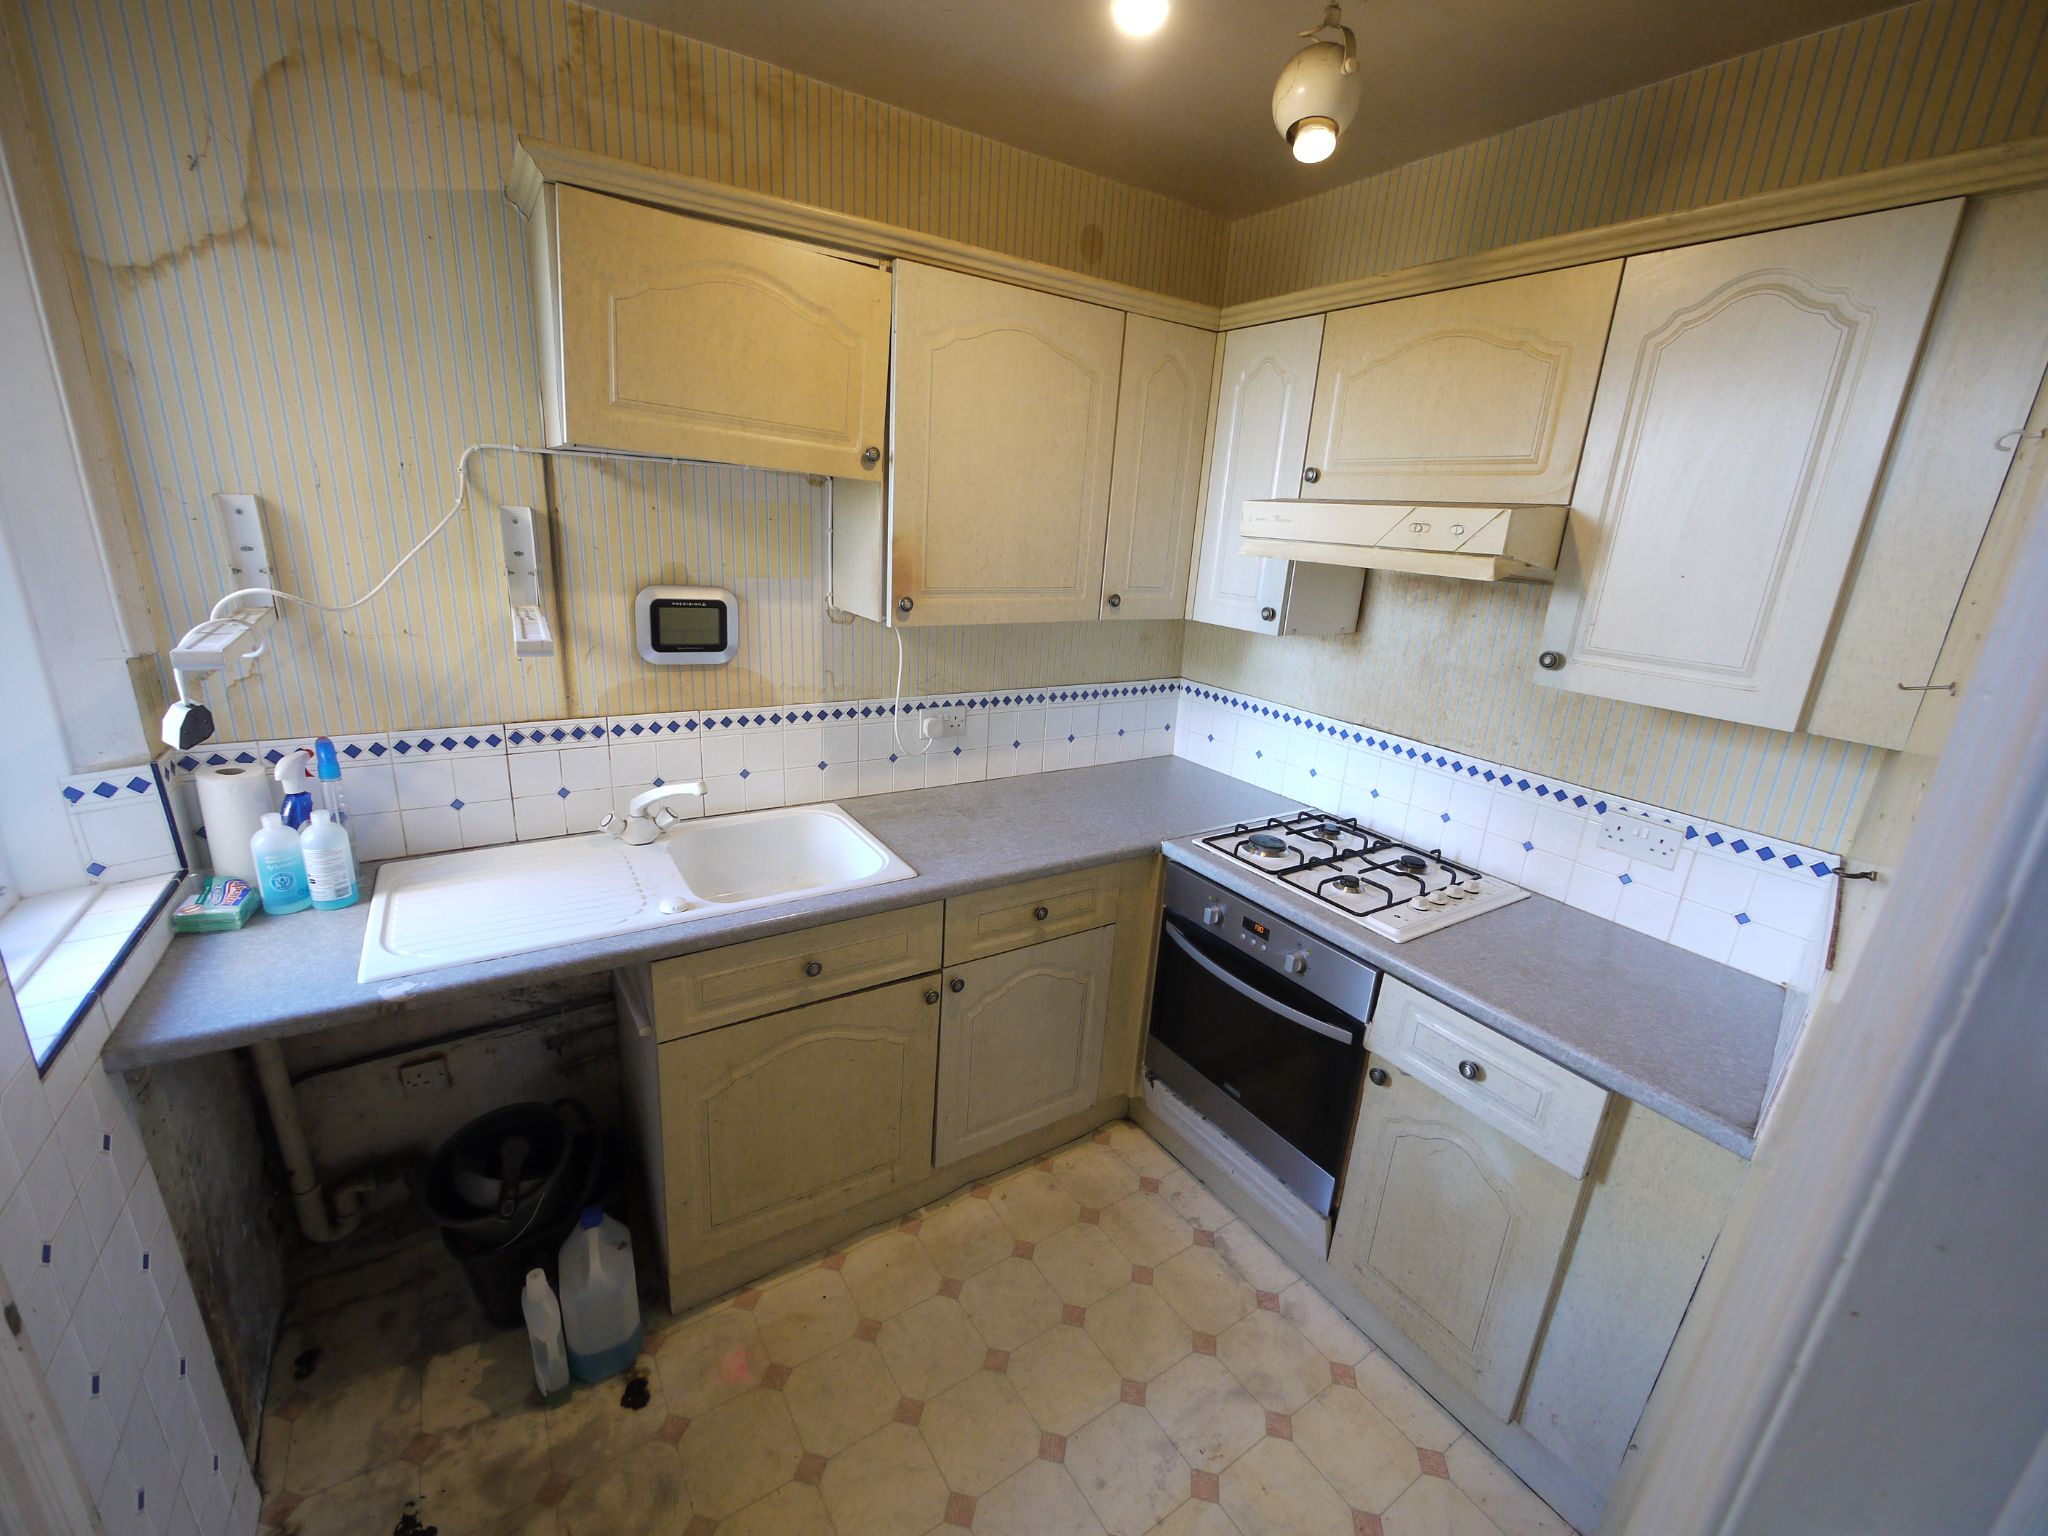 3 bedroom end terraced house SSTC in Brighouse - Kitchen.